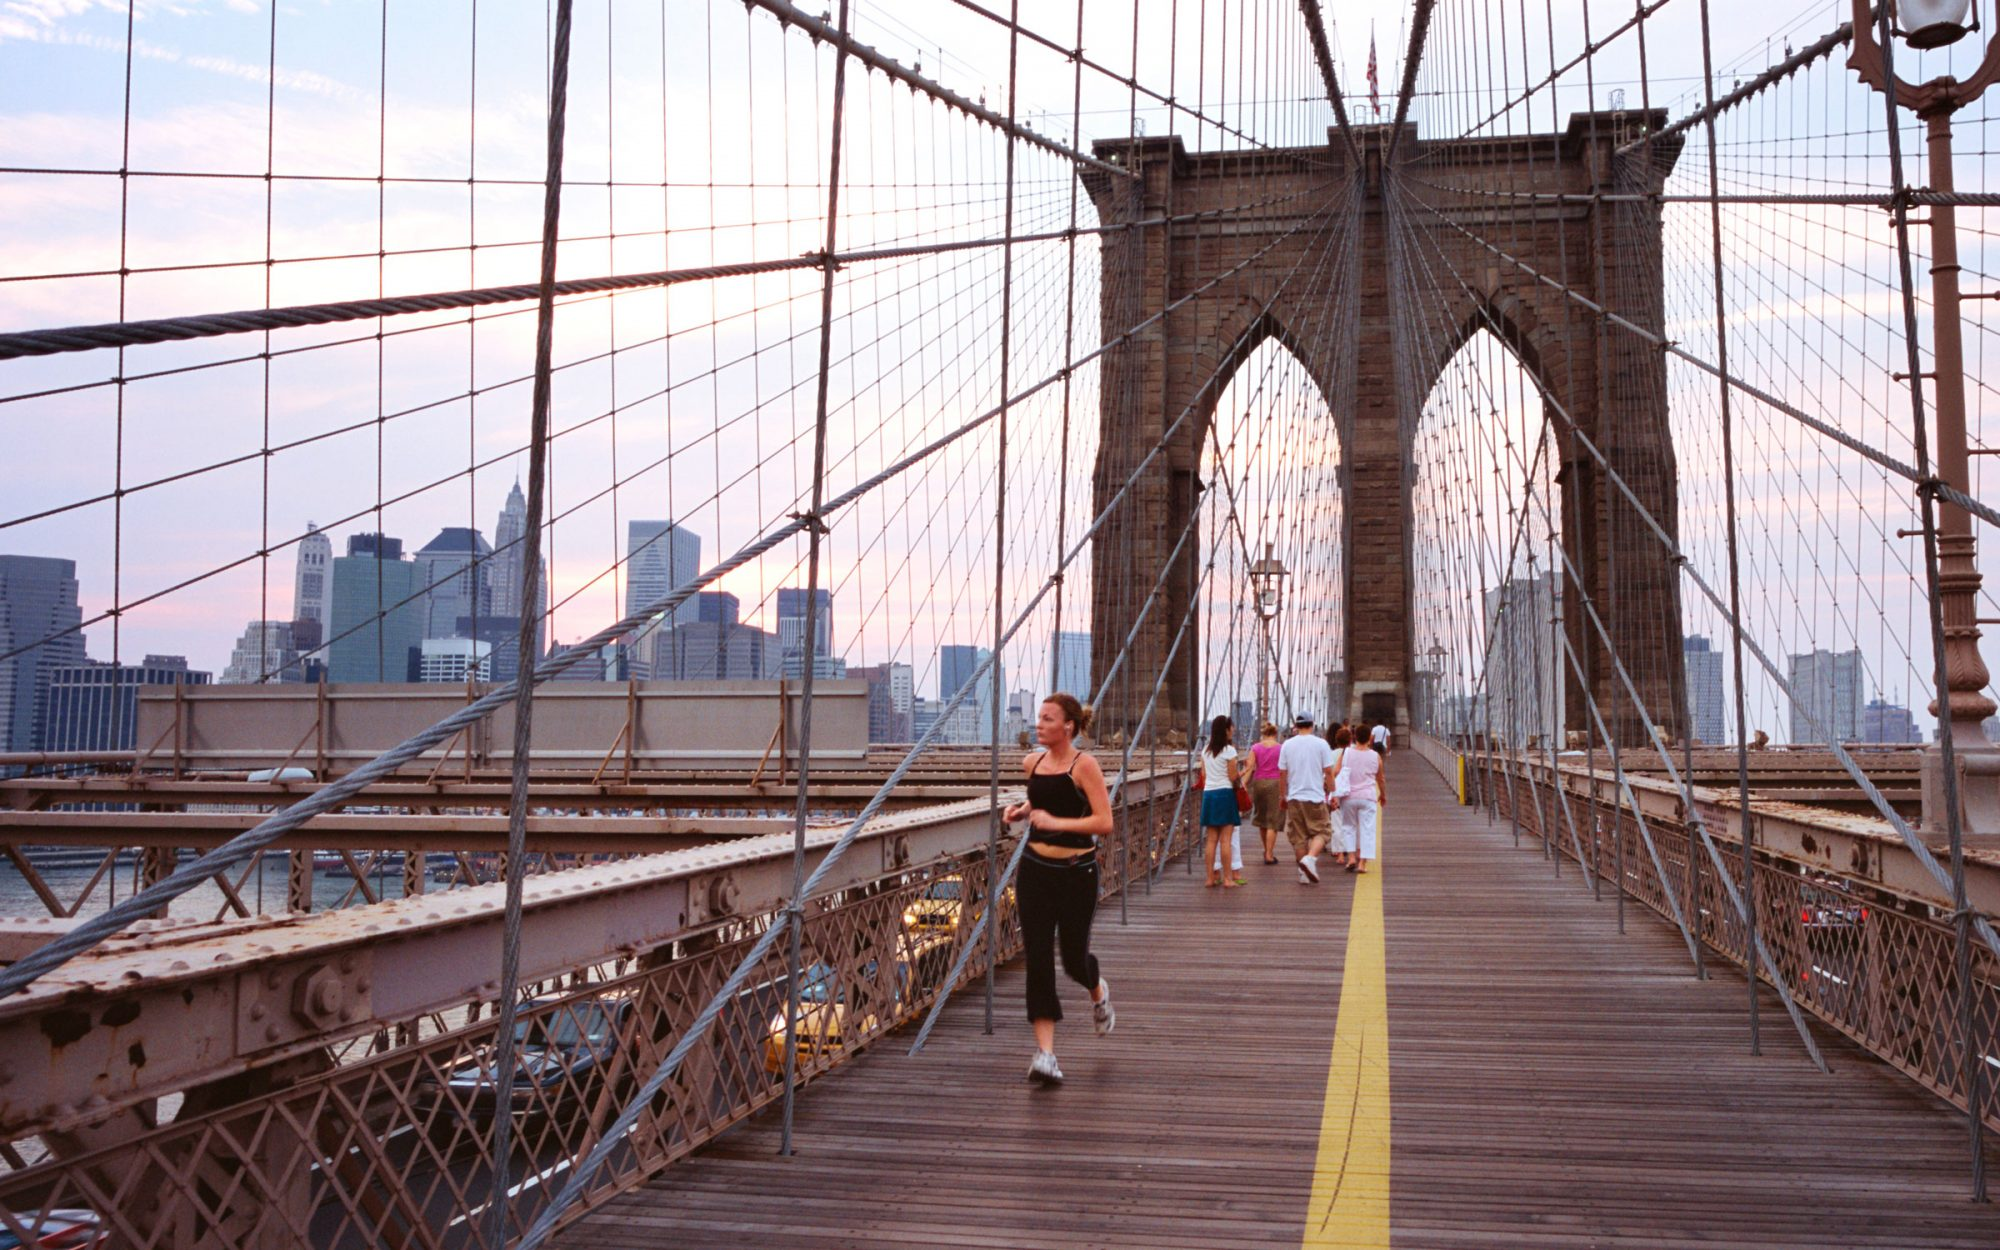 The Best Cities for Running Tours